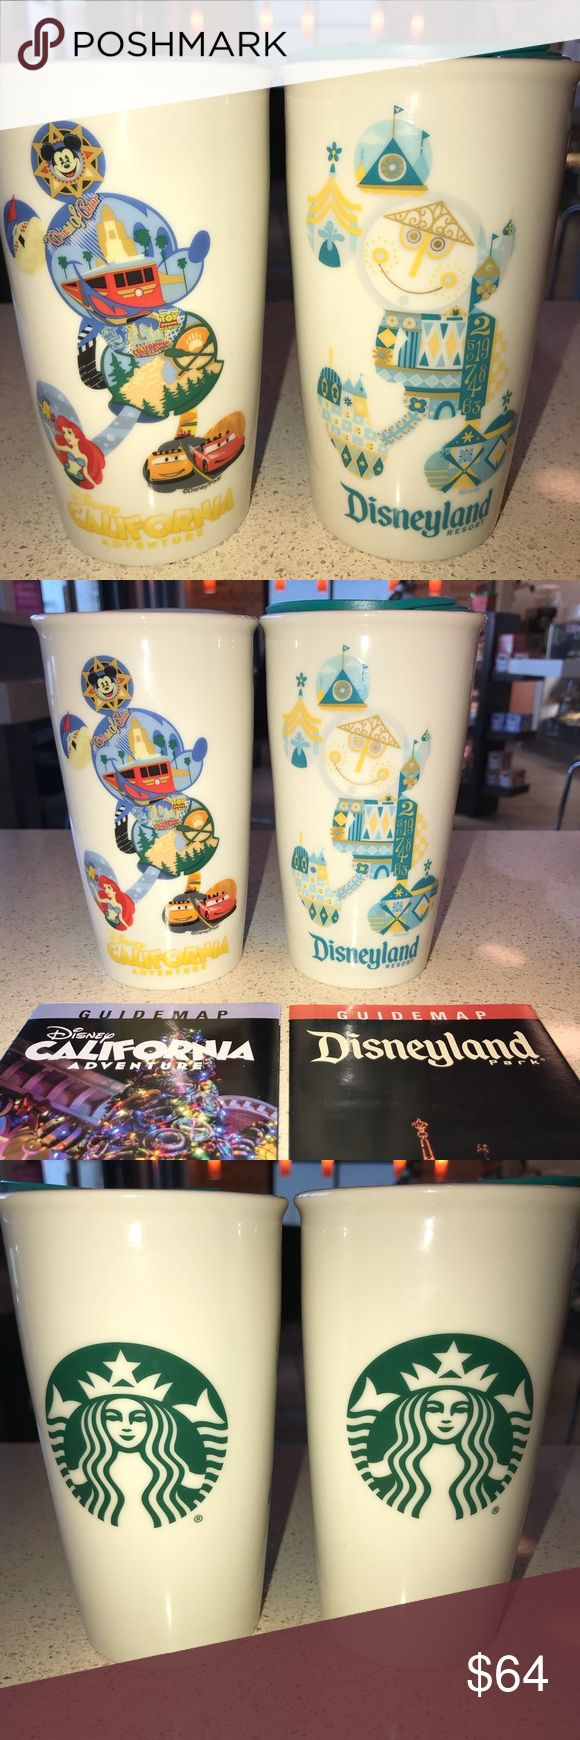 "STARBUCKS DISNEYLAND (2) TUMBLER MUG PACKAGE DEAL NOW AVAILABLE AT A ""SPECIAL DISCOUNTED PRICE""  GET (2) OF THE ""DISNEYLAND RESORT PARKS"" MOST POPULAR AND ""HIGHEST SELLING"" COLLECTOR'S MUGS IN ONE FANTASTIC PACKAGE DEAL ......   YOU GET (1) STARBUCKS DISNEYLAND (2017) ""IT'S A SMALL WORLD"" DOUBLE-WALLED CERAMIC TUMBLER MUG ....   PLUS (1) STARBUCKS DISNEY CALIFORNIA ADVENTURE (2017) ""HIDDEN MICKEY"" DOUBLE-WALLED CERAMIC TUMBLER MUG ....   BOTH ARE VERY HEAVY DUTY AND WELL MADE EXCELLENT…"